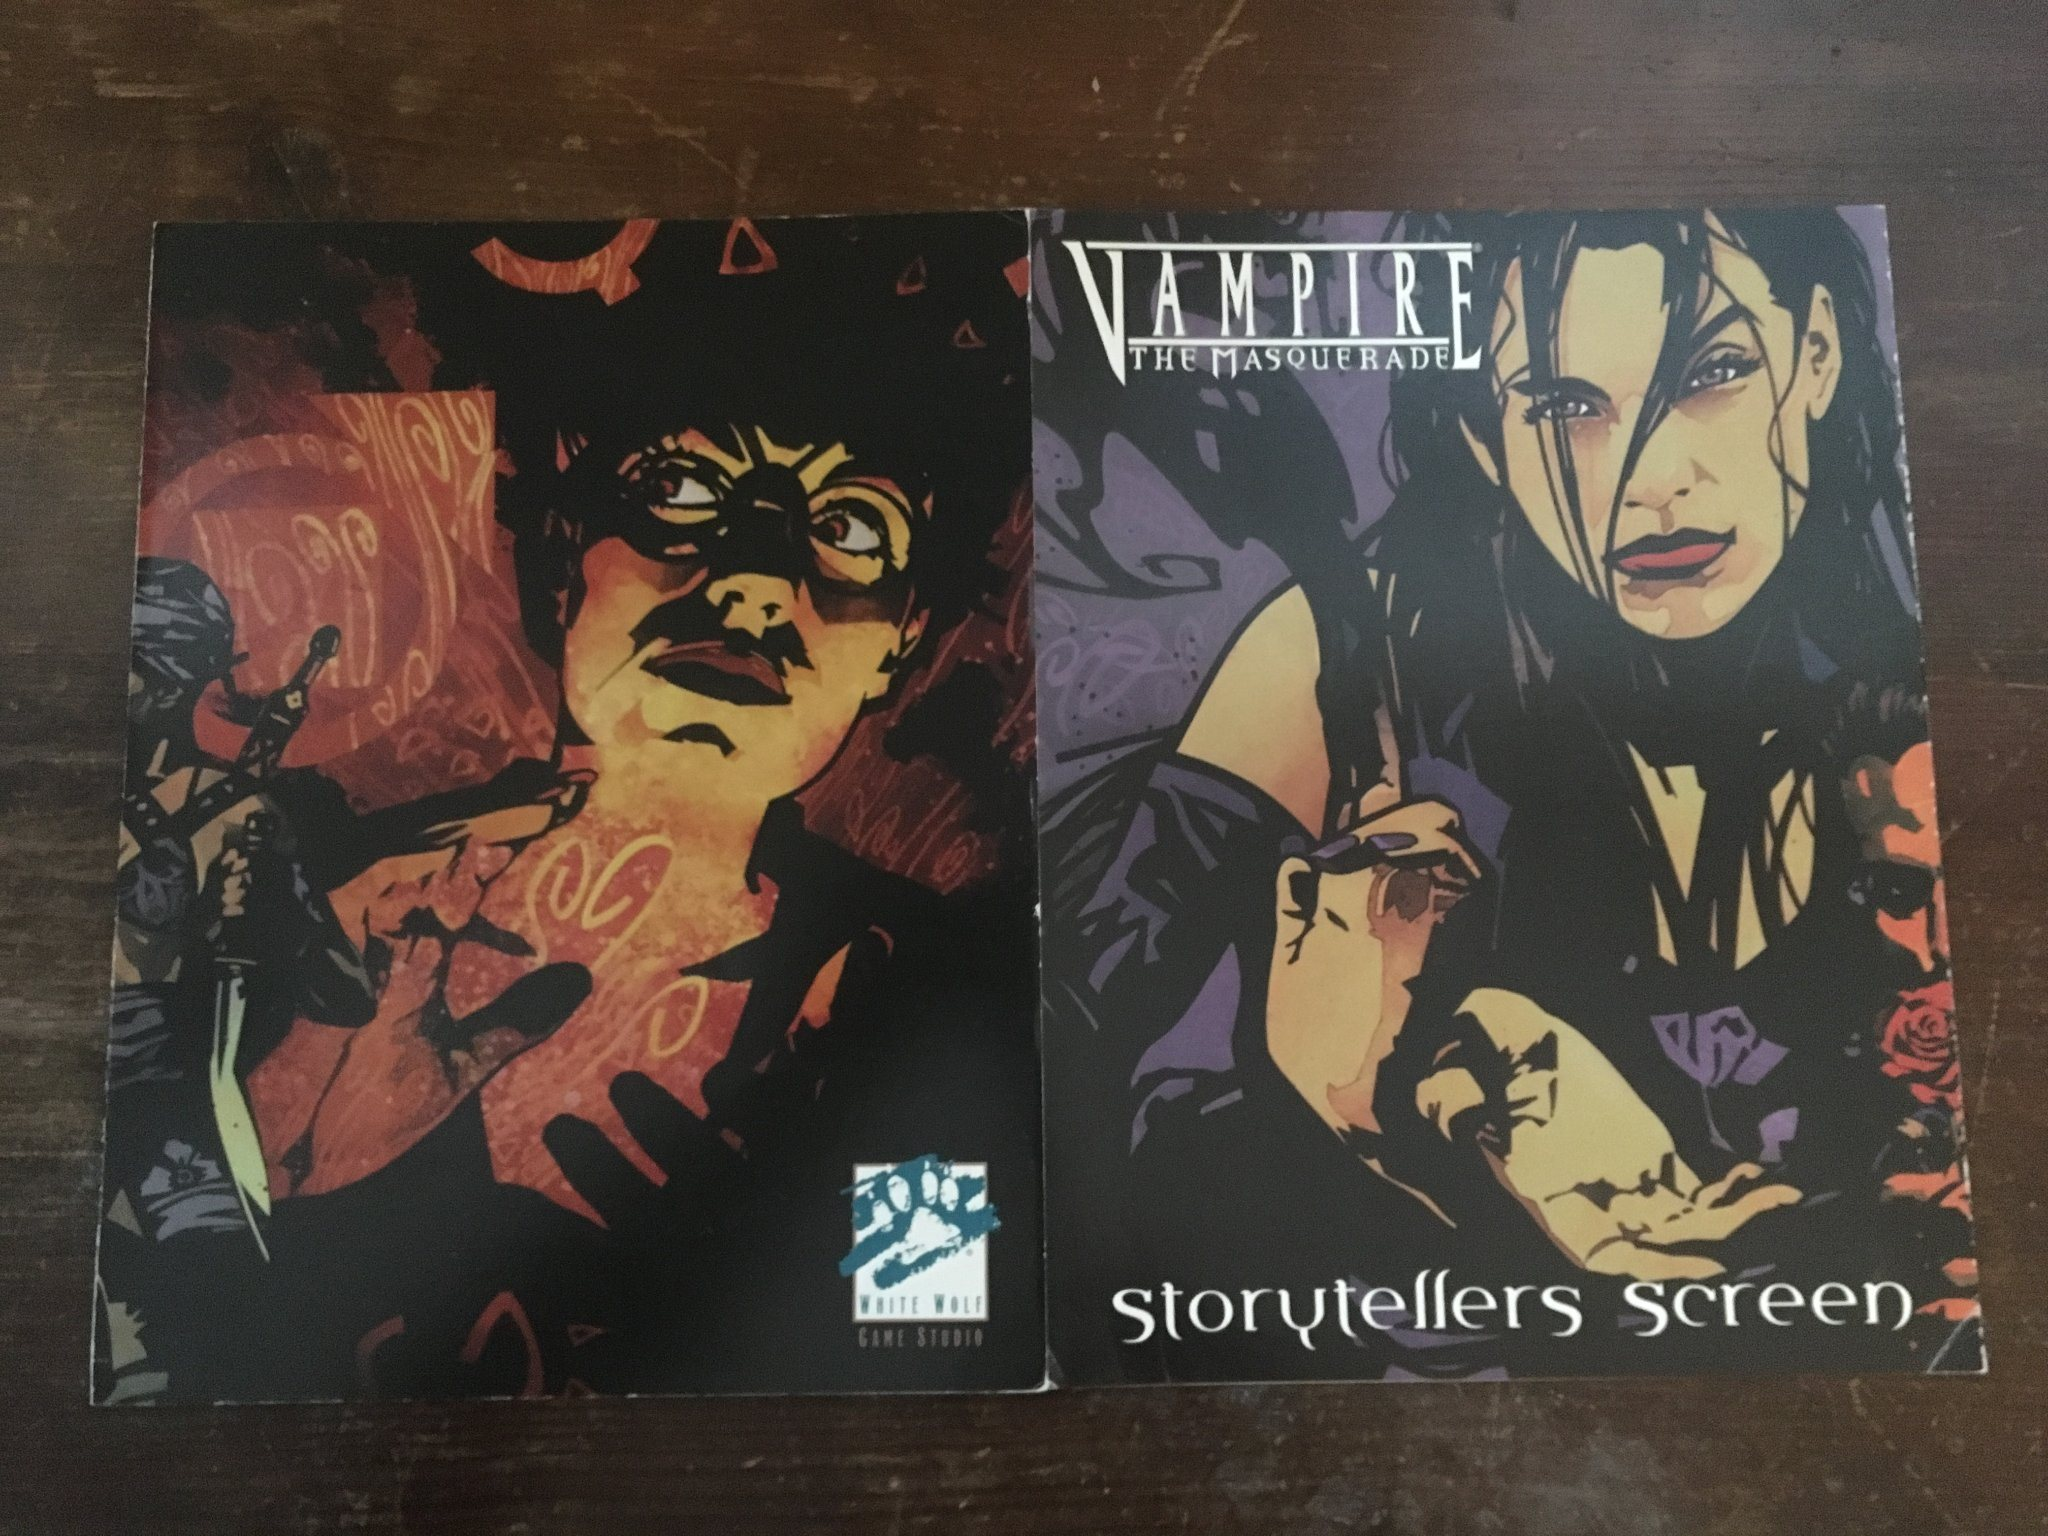 Vampire the Masquerade Storyteller's Screen (Revised)